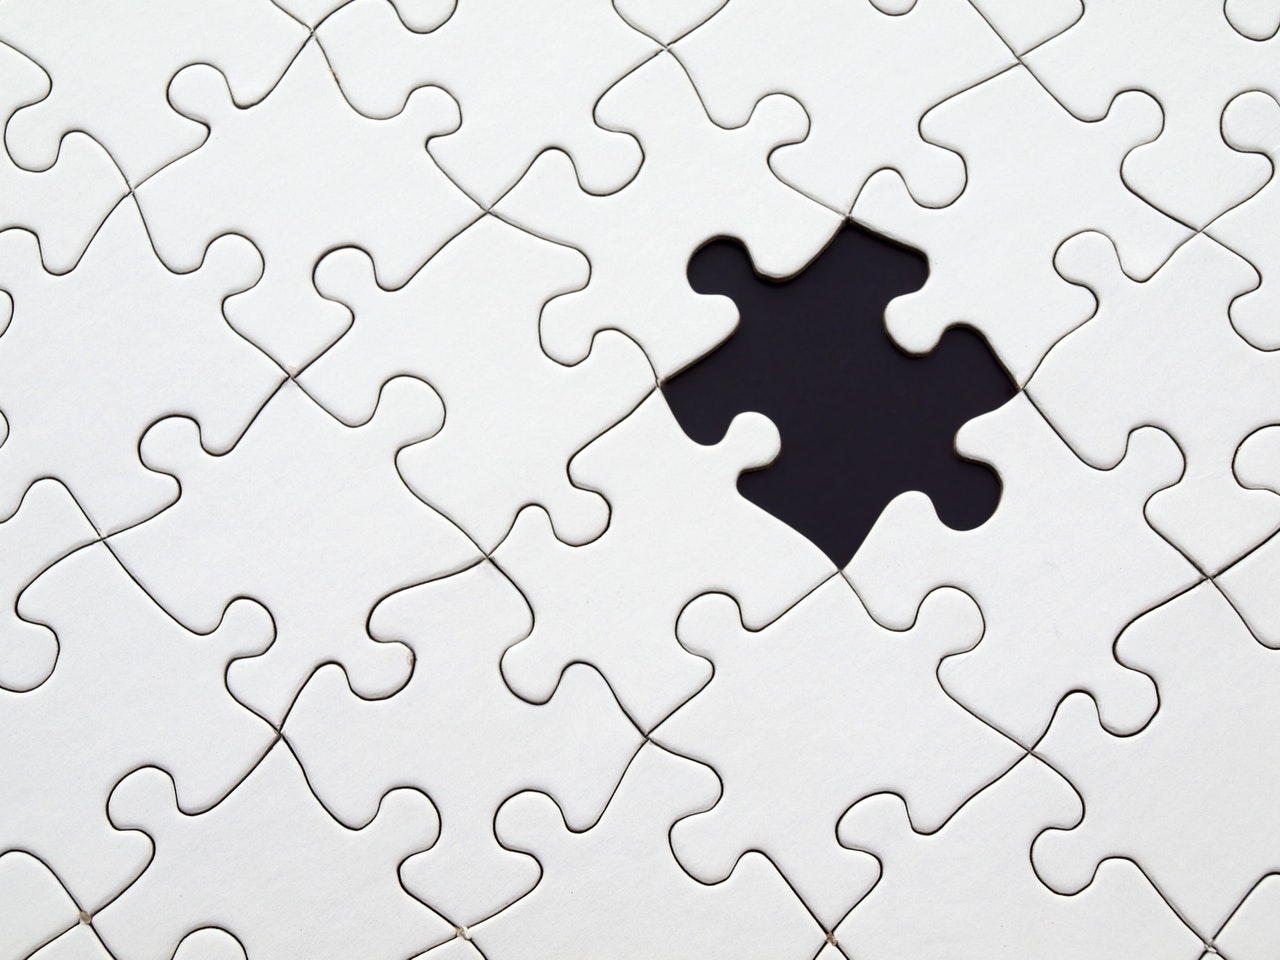 black-and-white-puzzle